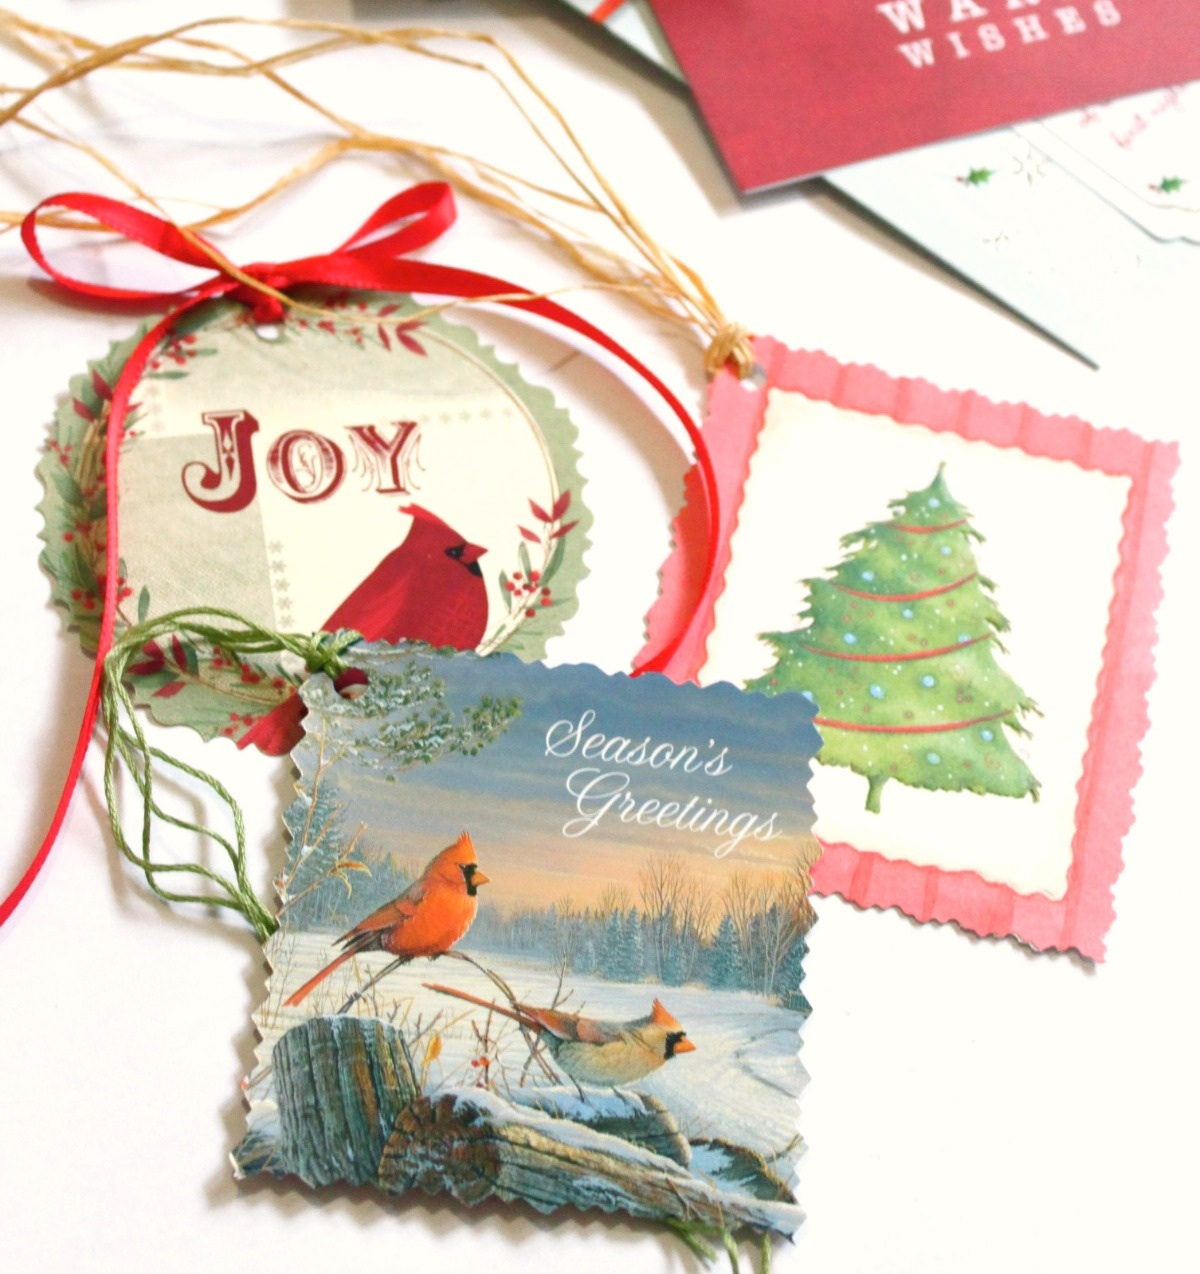 Examples of homemade gift tags using old Christmas cards.